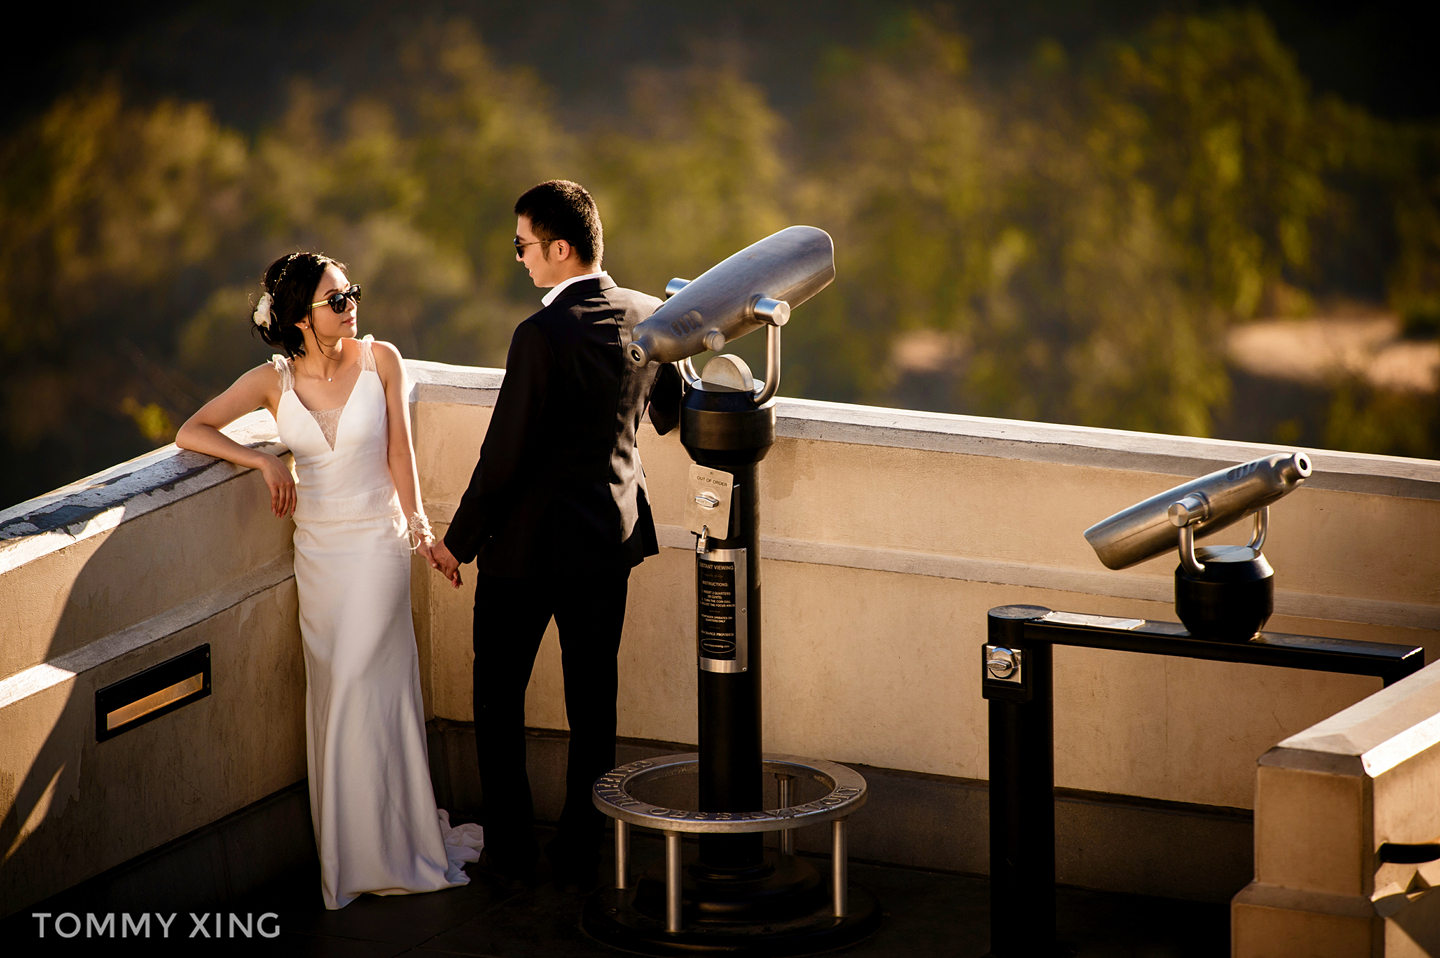 Los Angeles per-wedding 洛杉矶婚纱照 by Tommy Xing Photography 15.jpg